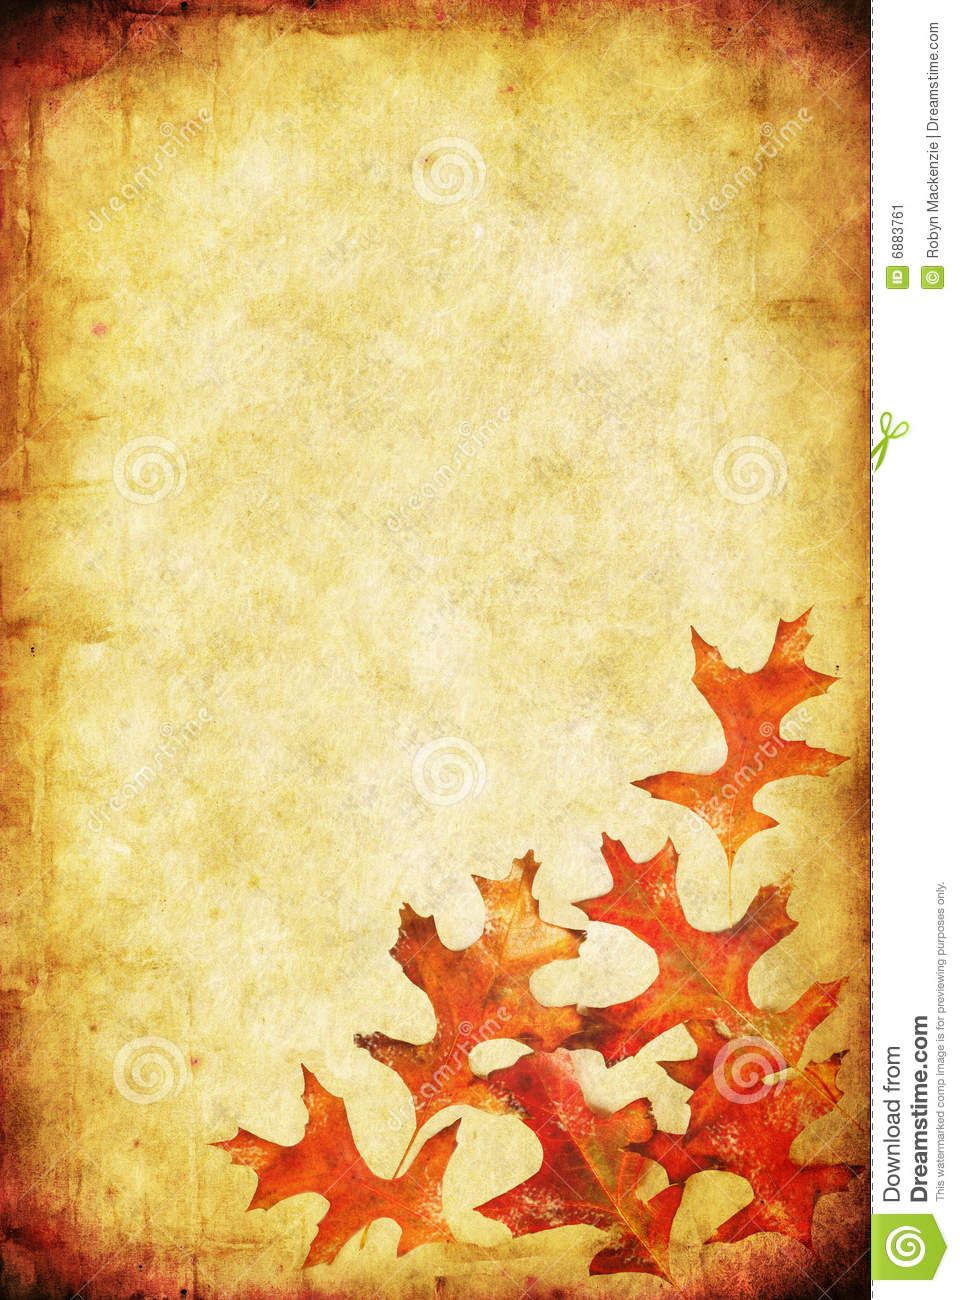 Fall Leaves Clip Art Wallpaper Fall Grunge Background Stock Image Image 6883761